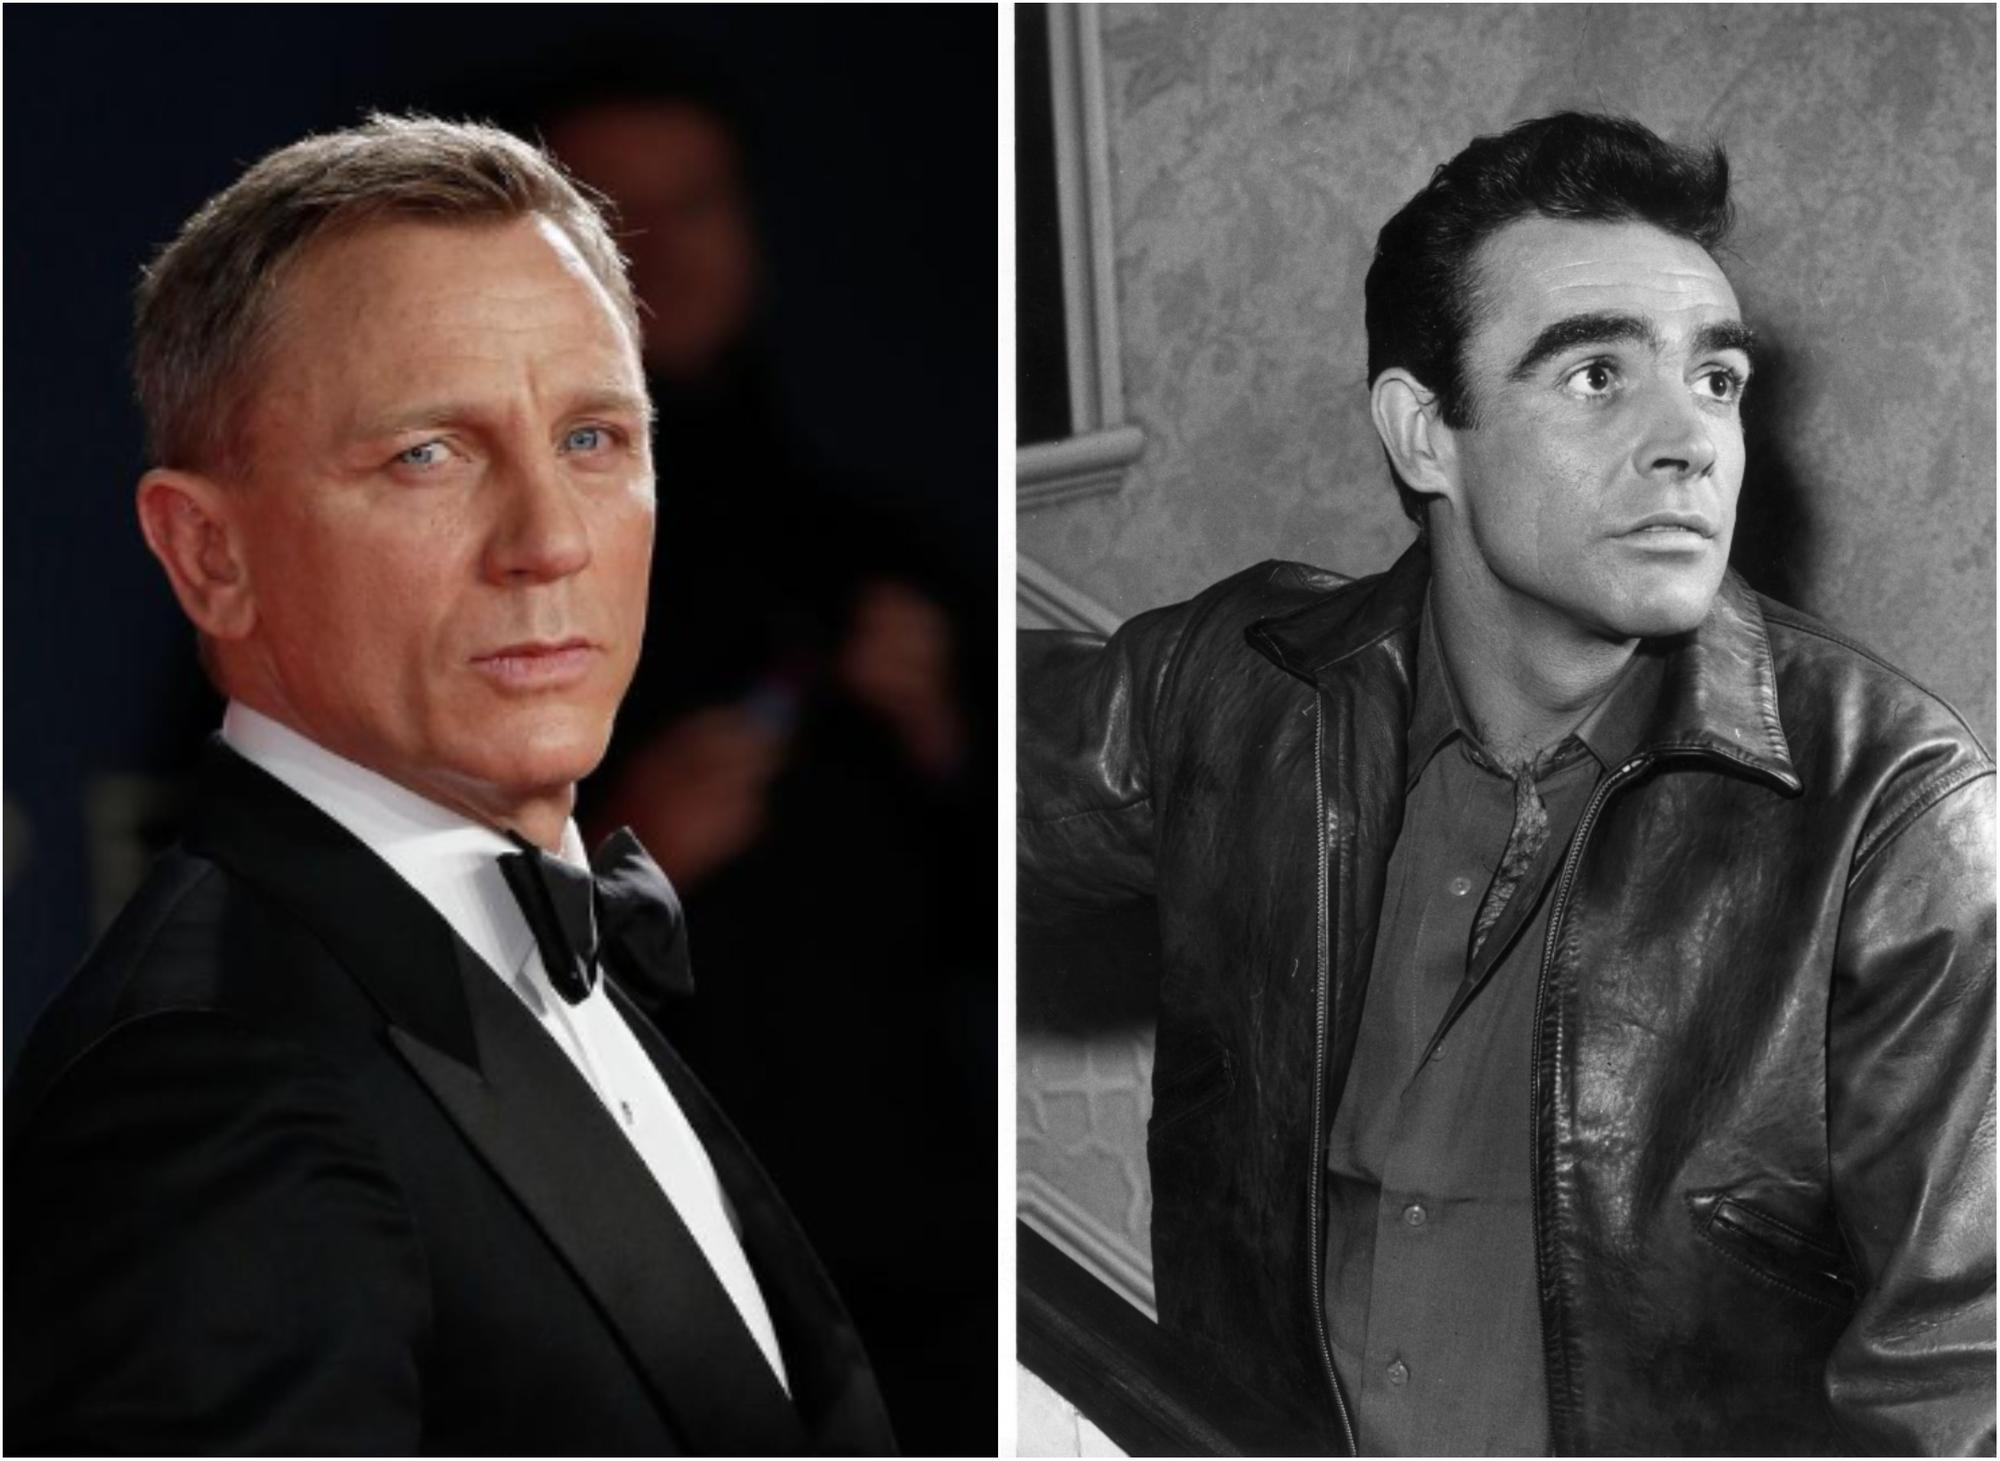 Current Bond Daniel Craig pays tribute to the legendary Scottish actor Sean Connery